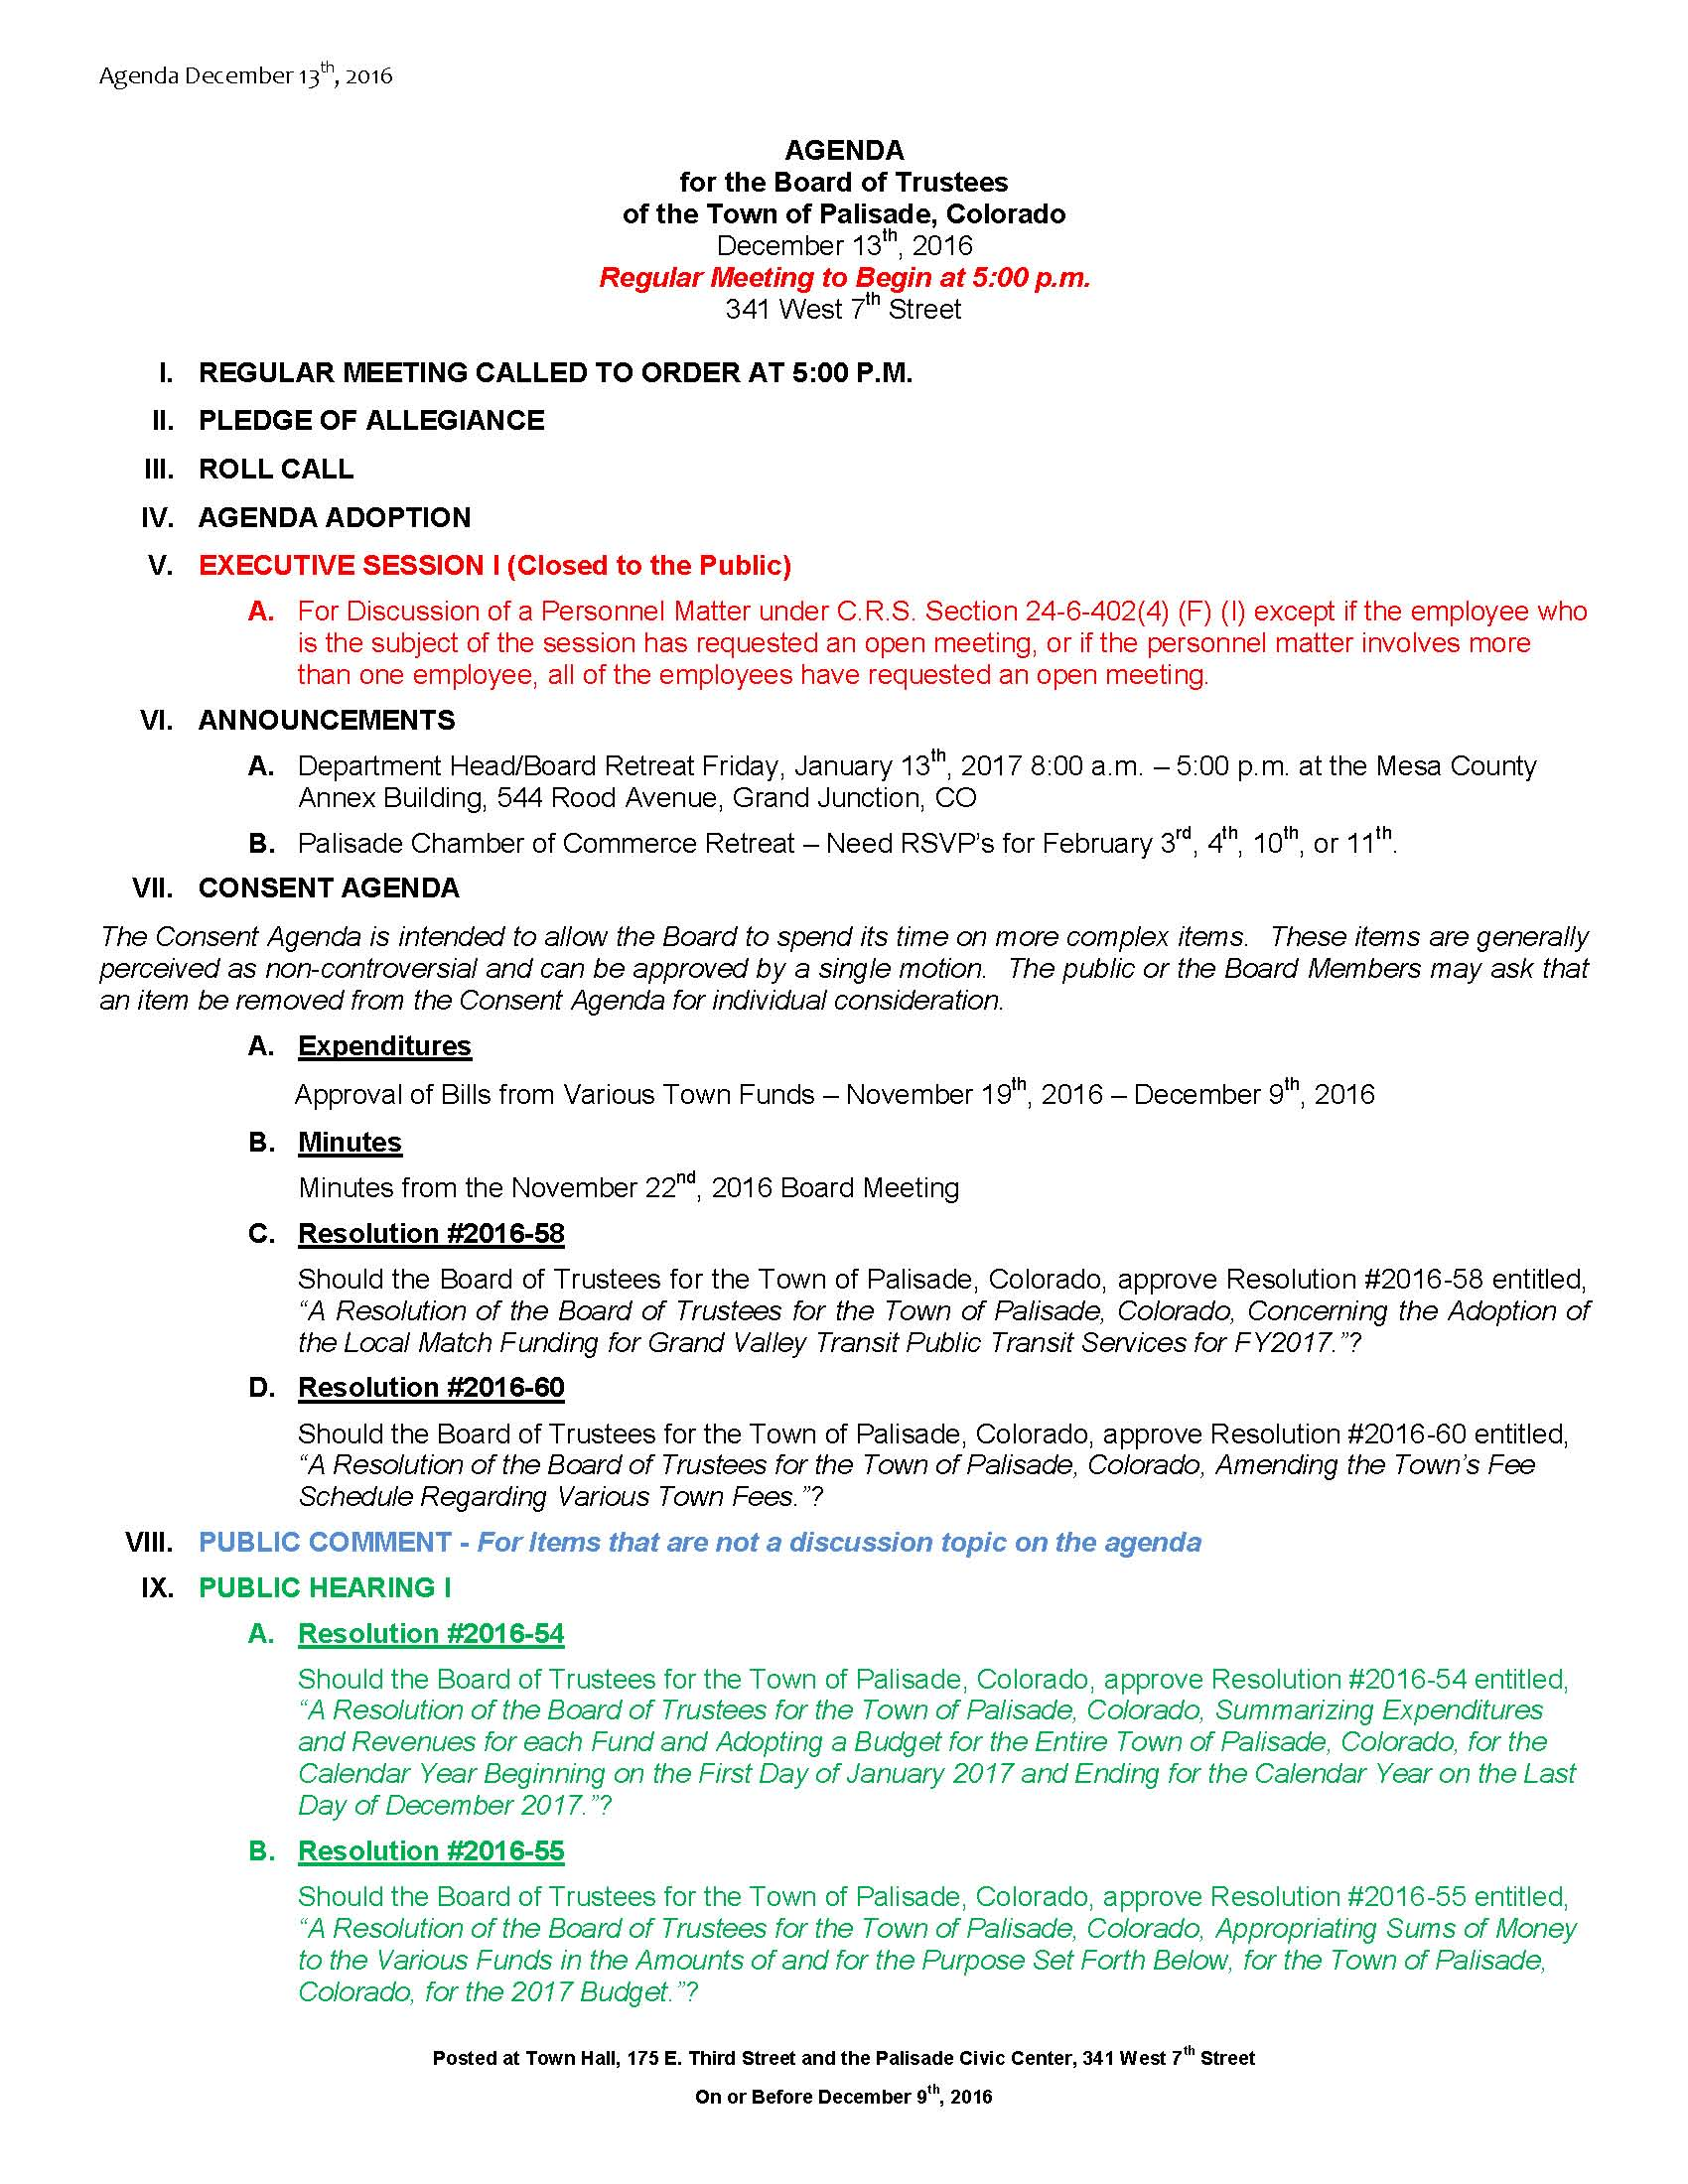 December 13th 2016 Board Meeting Agenda Page 1